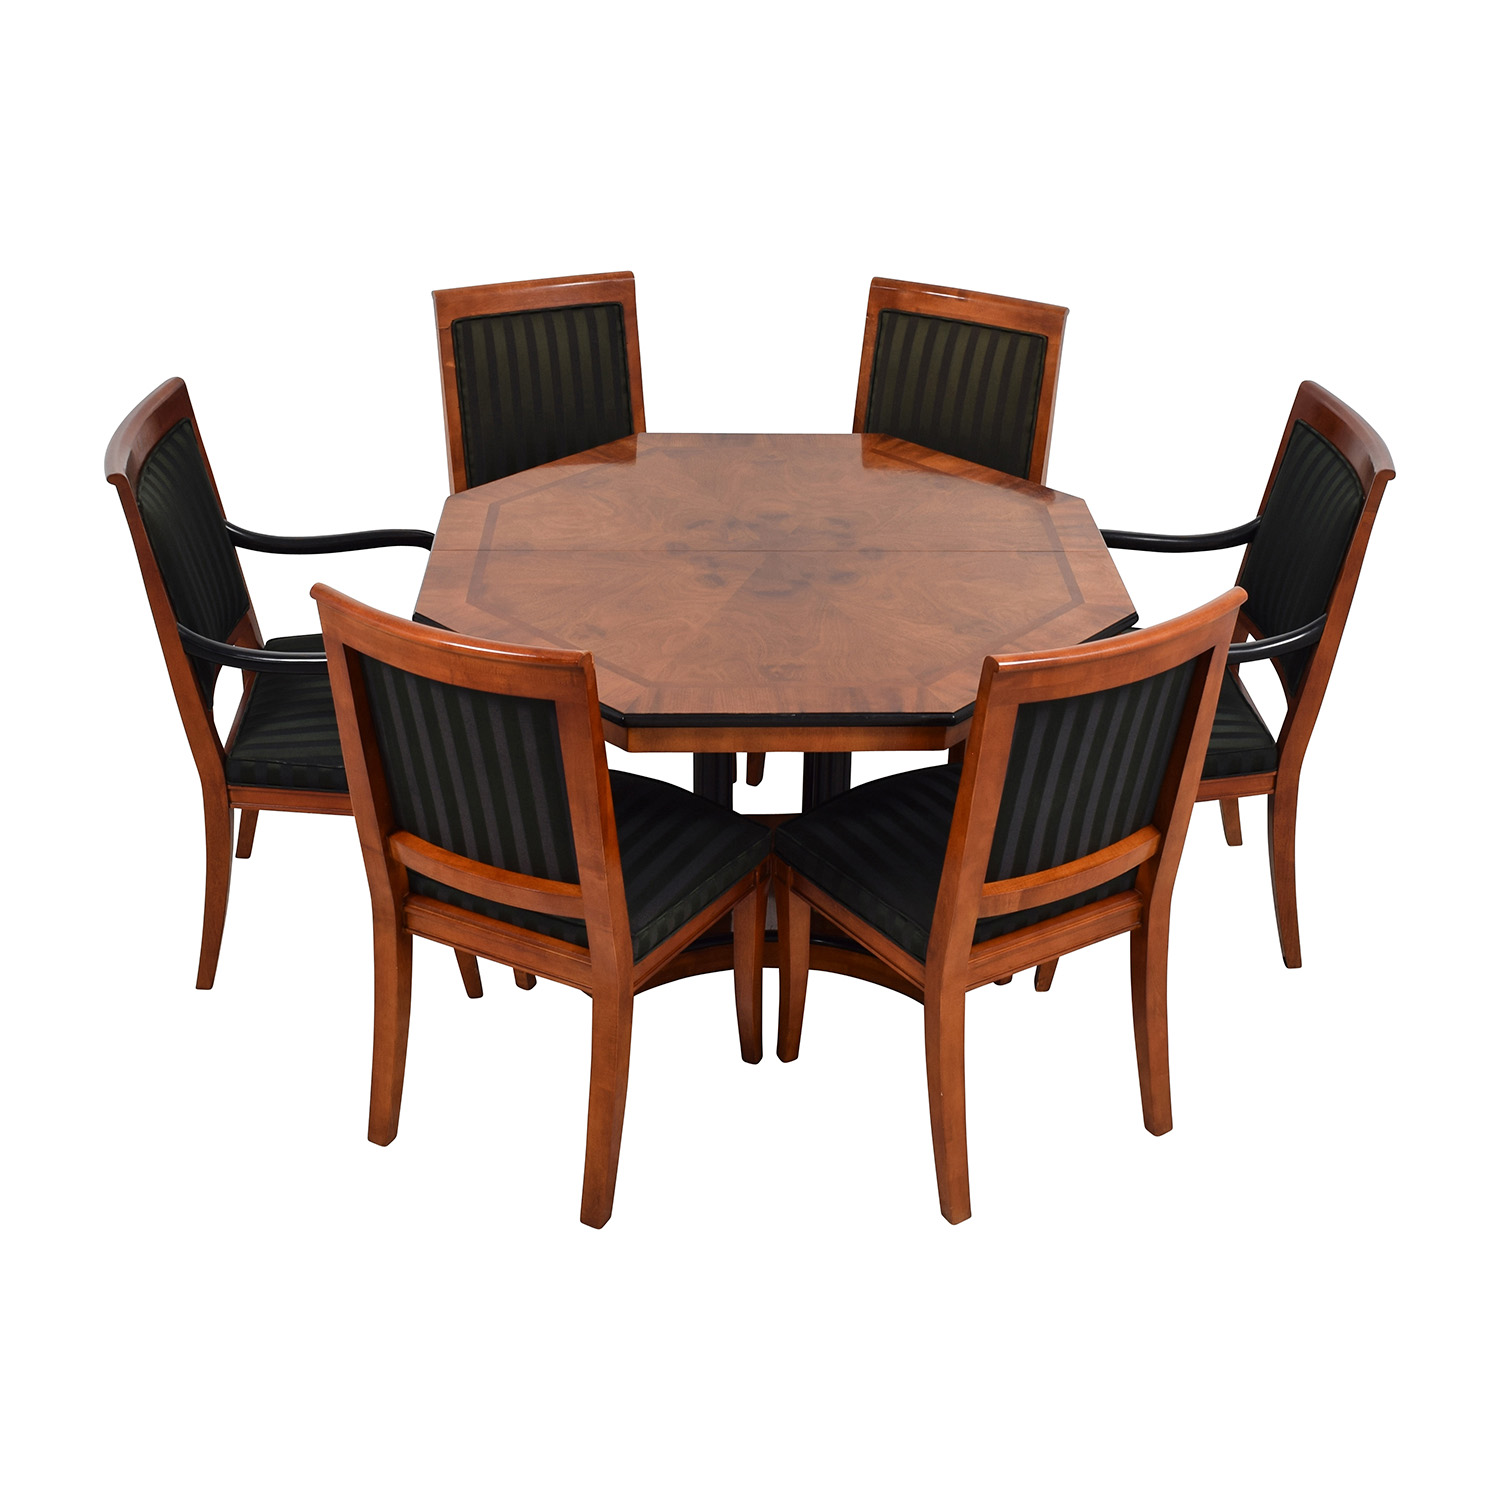 dining sets used dining sets for sale. Black Bedroom Furniture Sets. Home Design Ideas